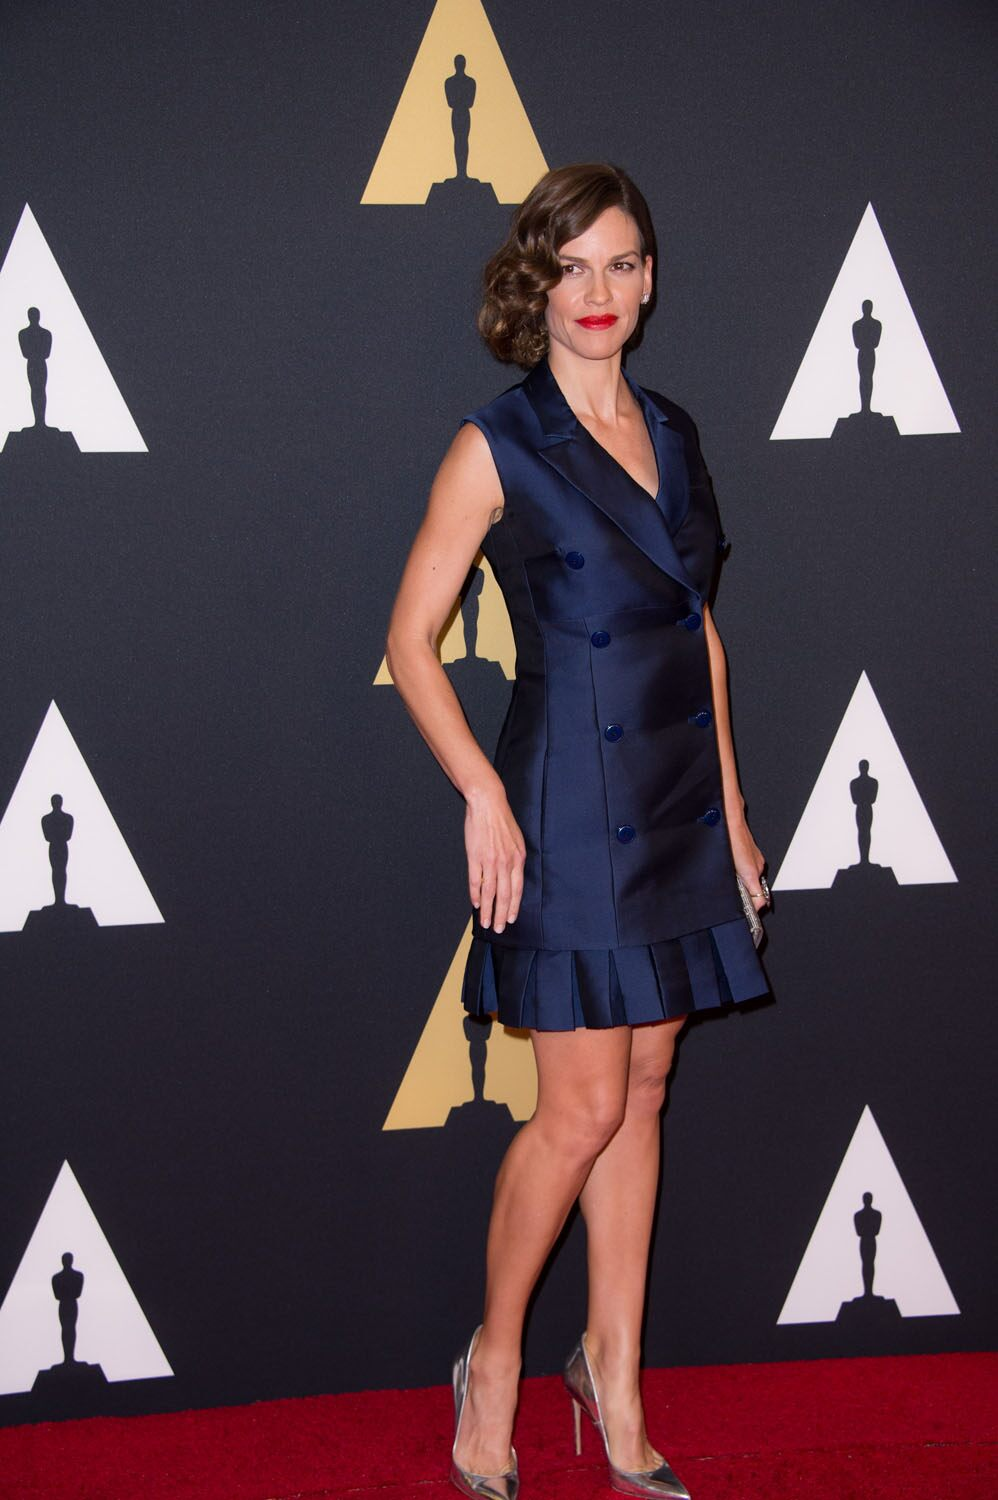 Hillary Swank at the 6th Annual Governors Awards